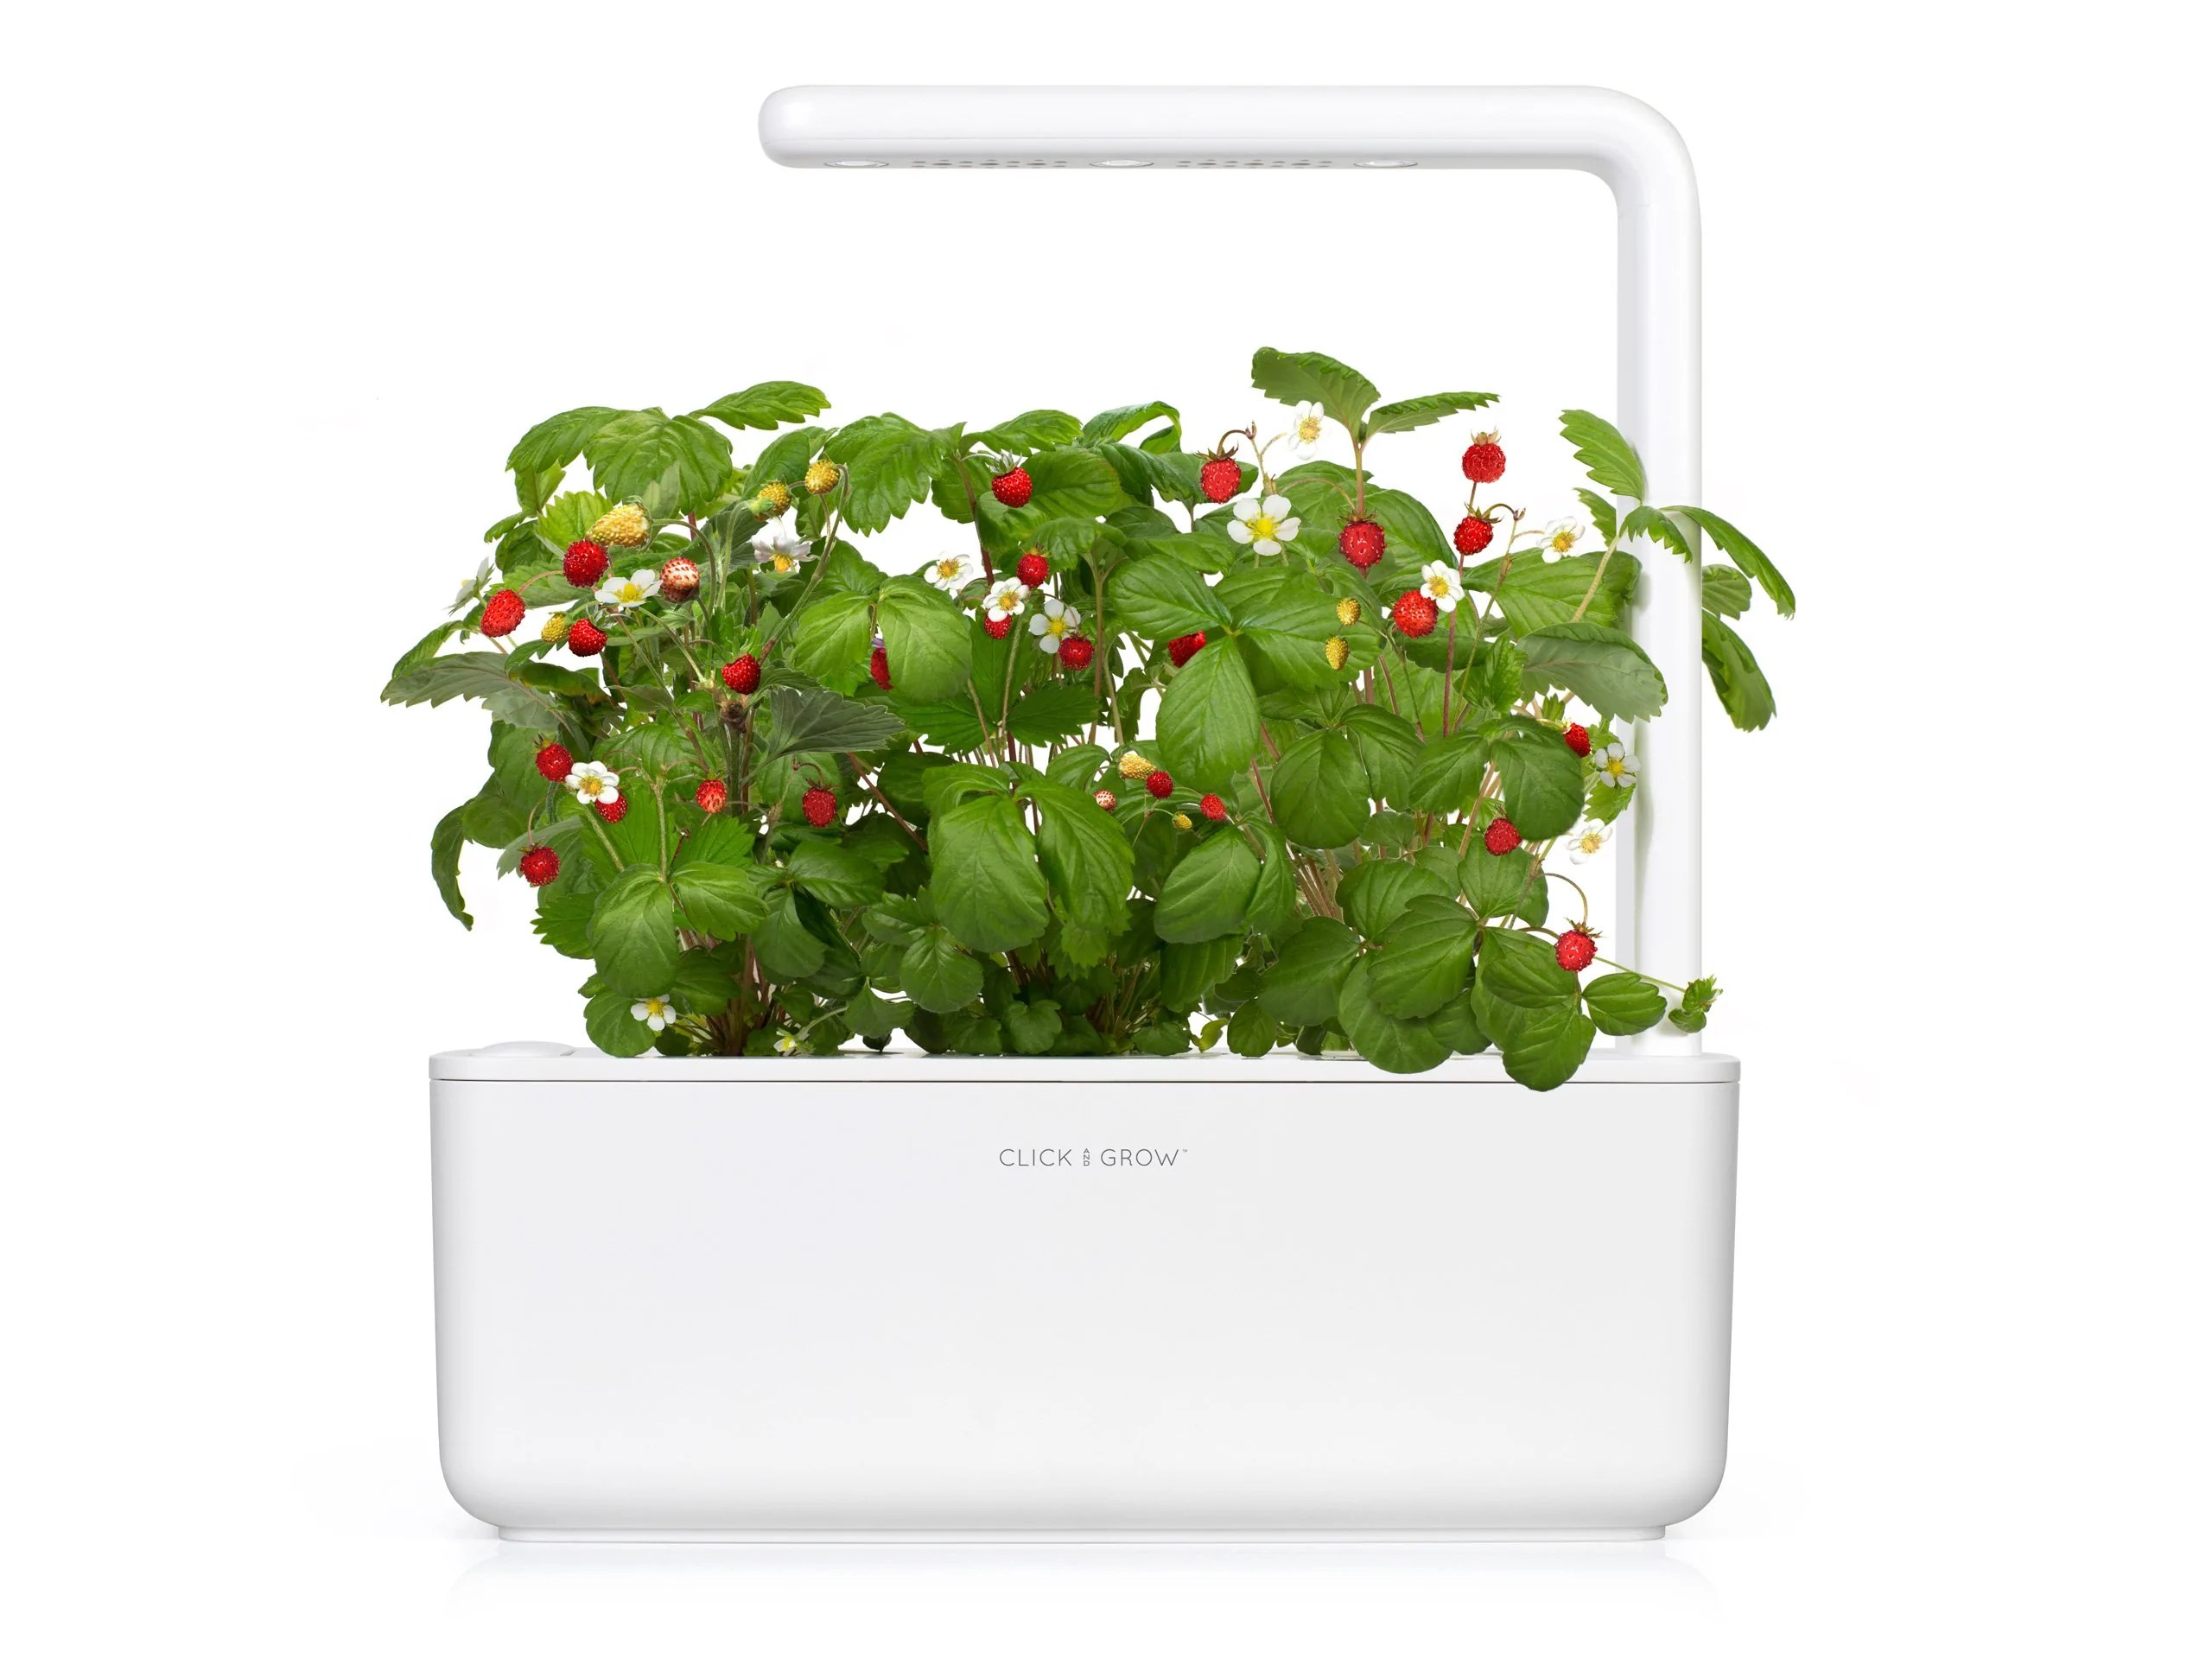 Garten Design Online Shop The Smart Garden 3